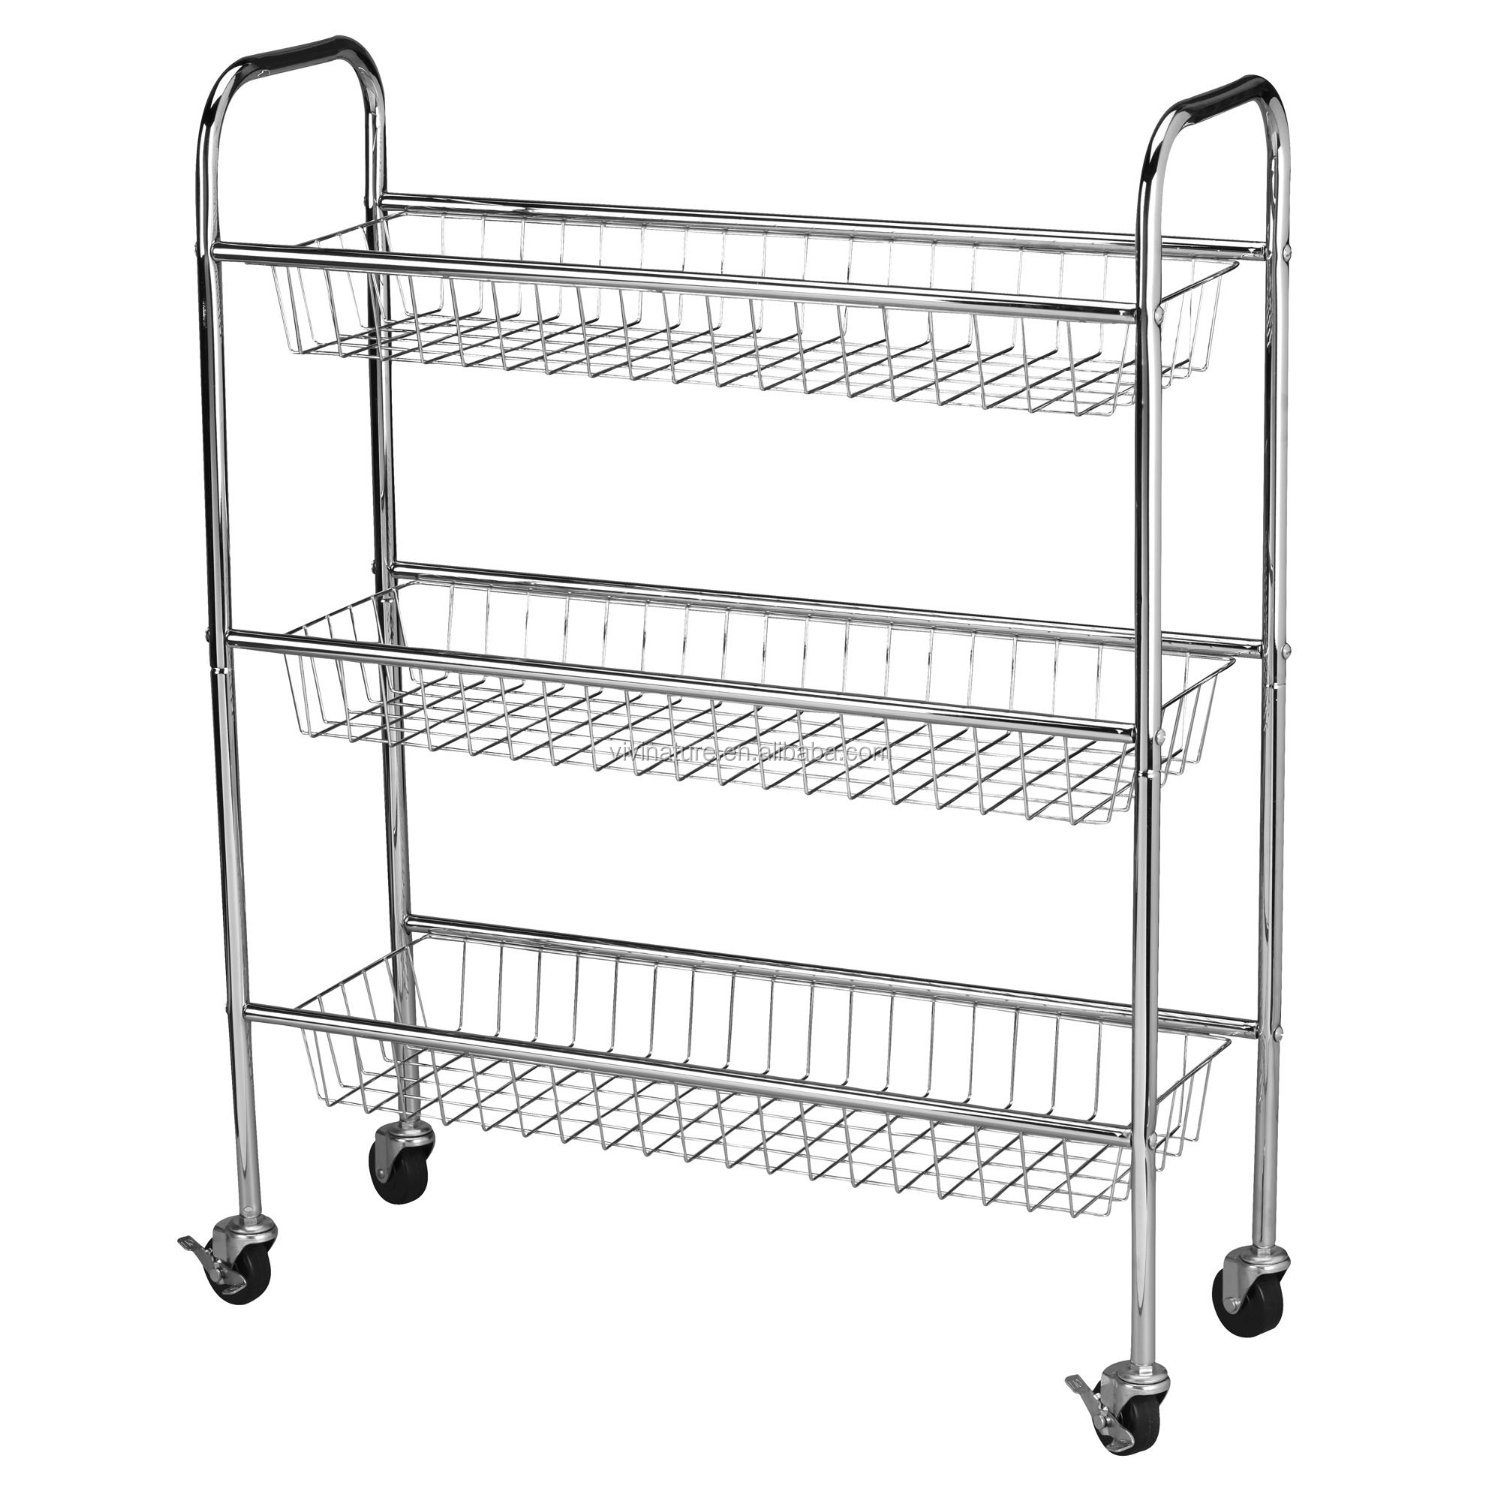 Tier Metal Storage Car Great Rolling Cart Organizer For Office And Rolling  Kitchen Carts On Sale   Buy 3 Tier Storage Cart,Metal Tea Cart,Industrial  ...